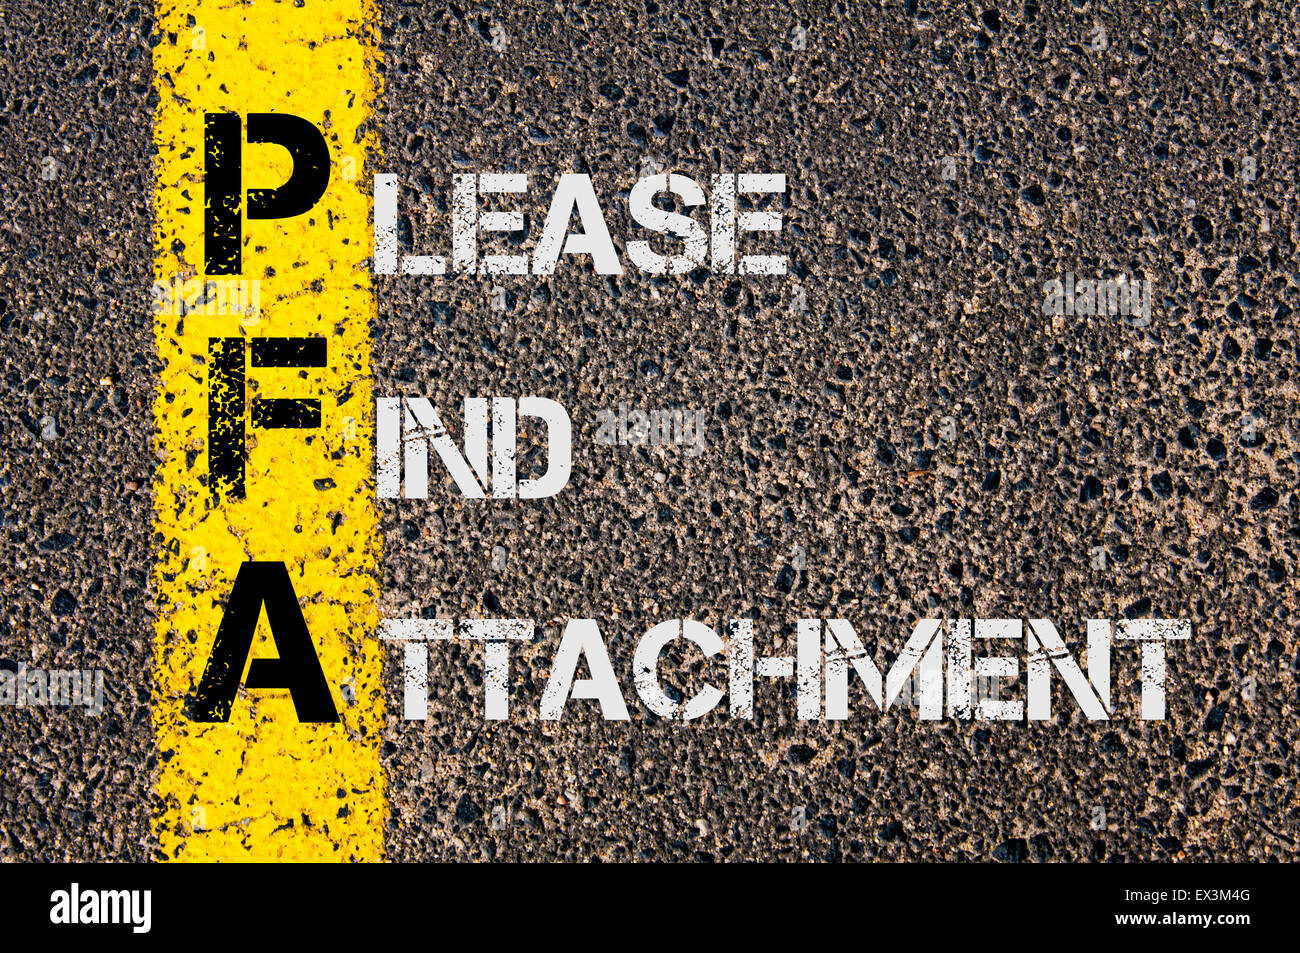 Concept image of Business Acronym PFA as Please Find Attachment written over road marking yellow painted line. - Stock Image